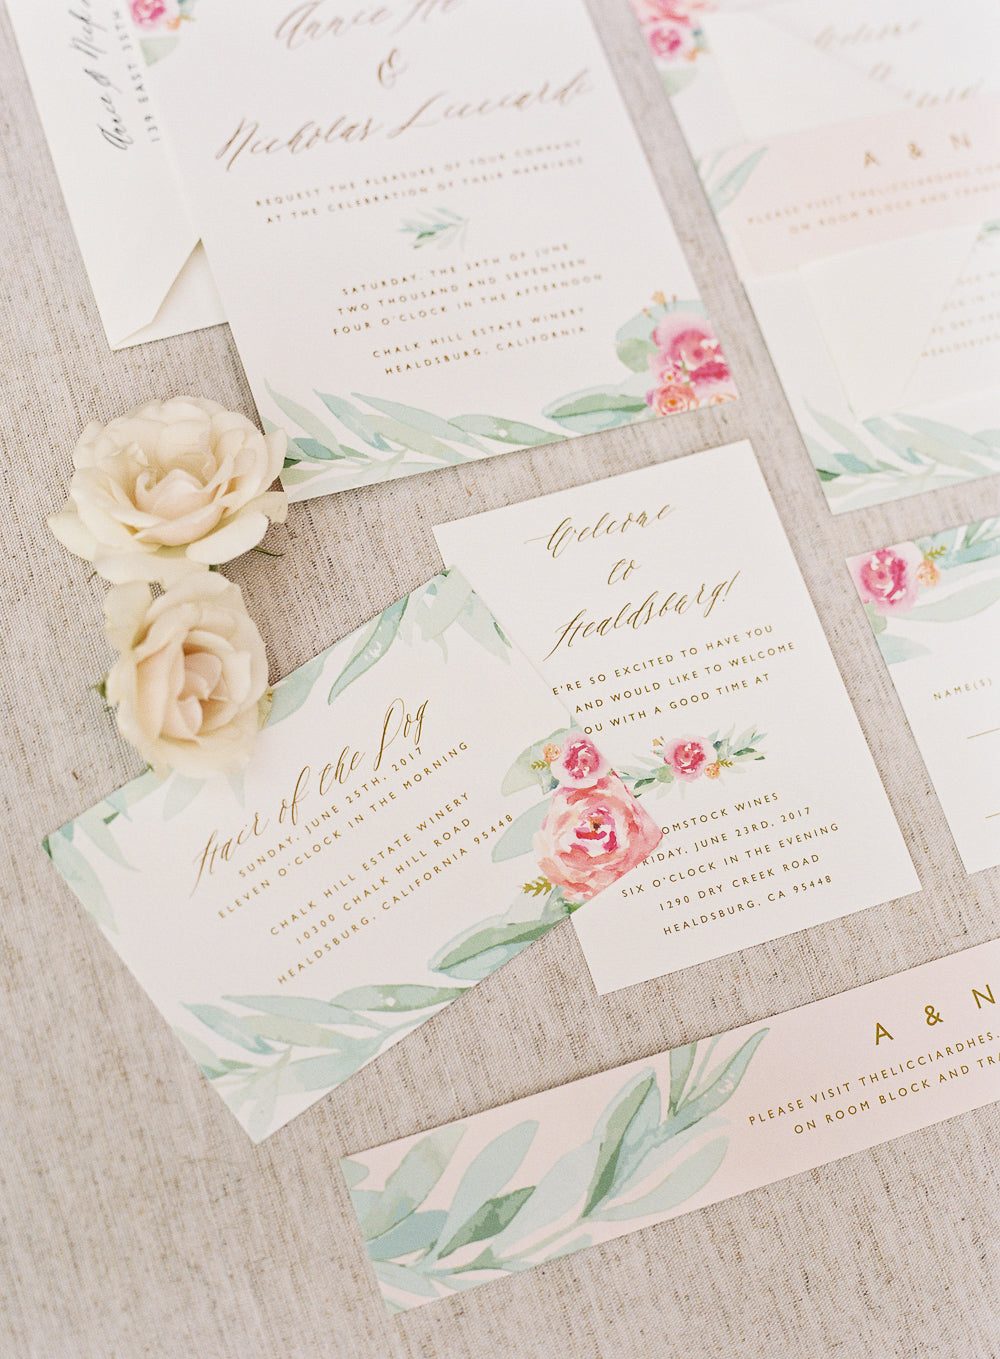 Custom Wedding Invitation Botanical Rose Gold Copper Foil Citrus Press Co Stationery Design eucalyptus watercolor Chalk Hil California vineyard romantic elegant calligraphy